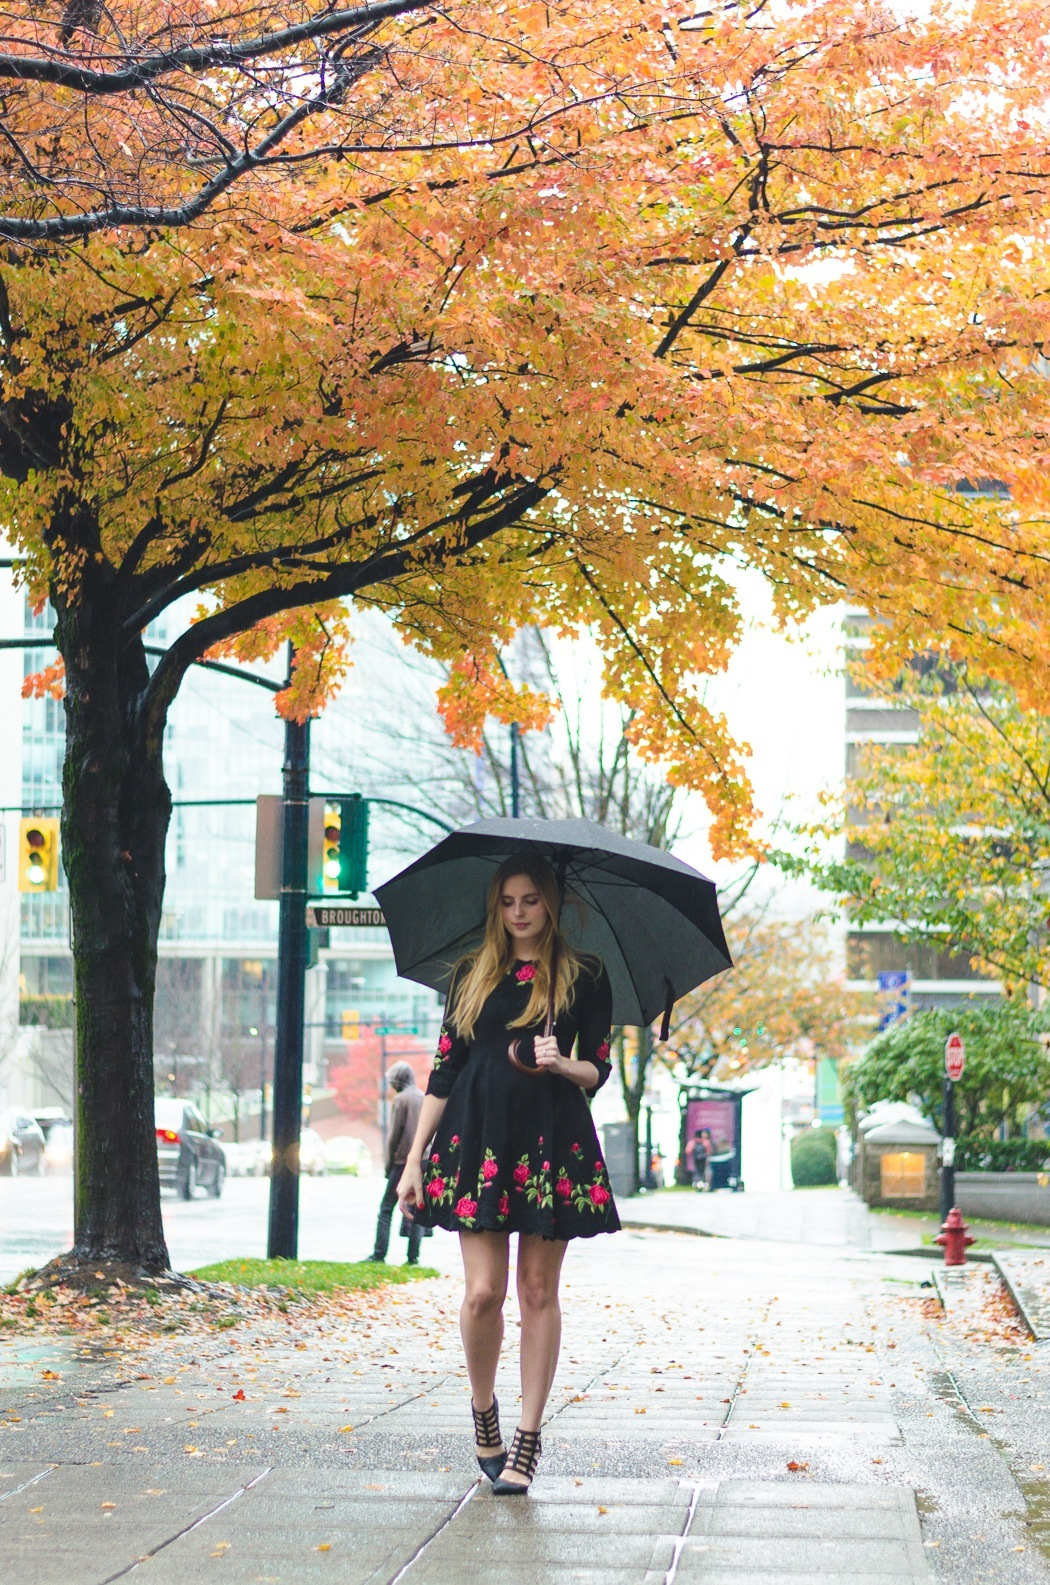 the urban umbrella style blog, vancouver style blog, vancouver style blogger, vancouver fashion blog, vancouver lifestyle blog, vancouver health blog, vancouver fitness blog, vancouver travel blog, canadian fashion blog, canadian style blog, canadian lifestyle blog, canadian health blog, canadian fitness blog, canadian travel blog, bree aylwin, how to style a summer dress in fall, the allure for rose chicwish dress, the prettiest fit and flare dress, best health blogs, best travel blogs, top fashion blogs, top style blogs, top lifestyle blogs, top fitness blogs, top health blogs, top travel blogs